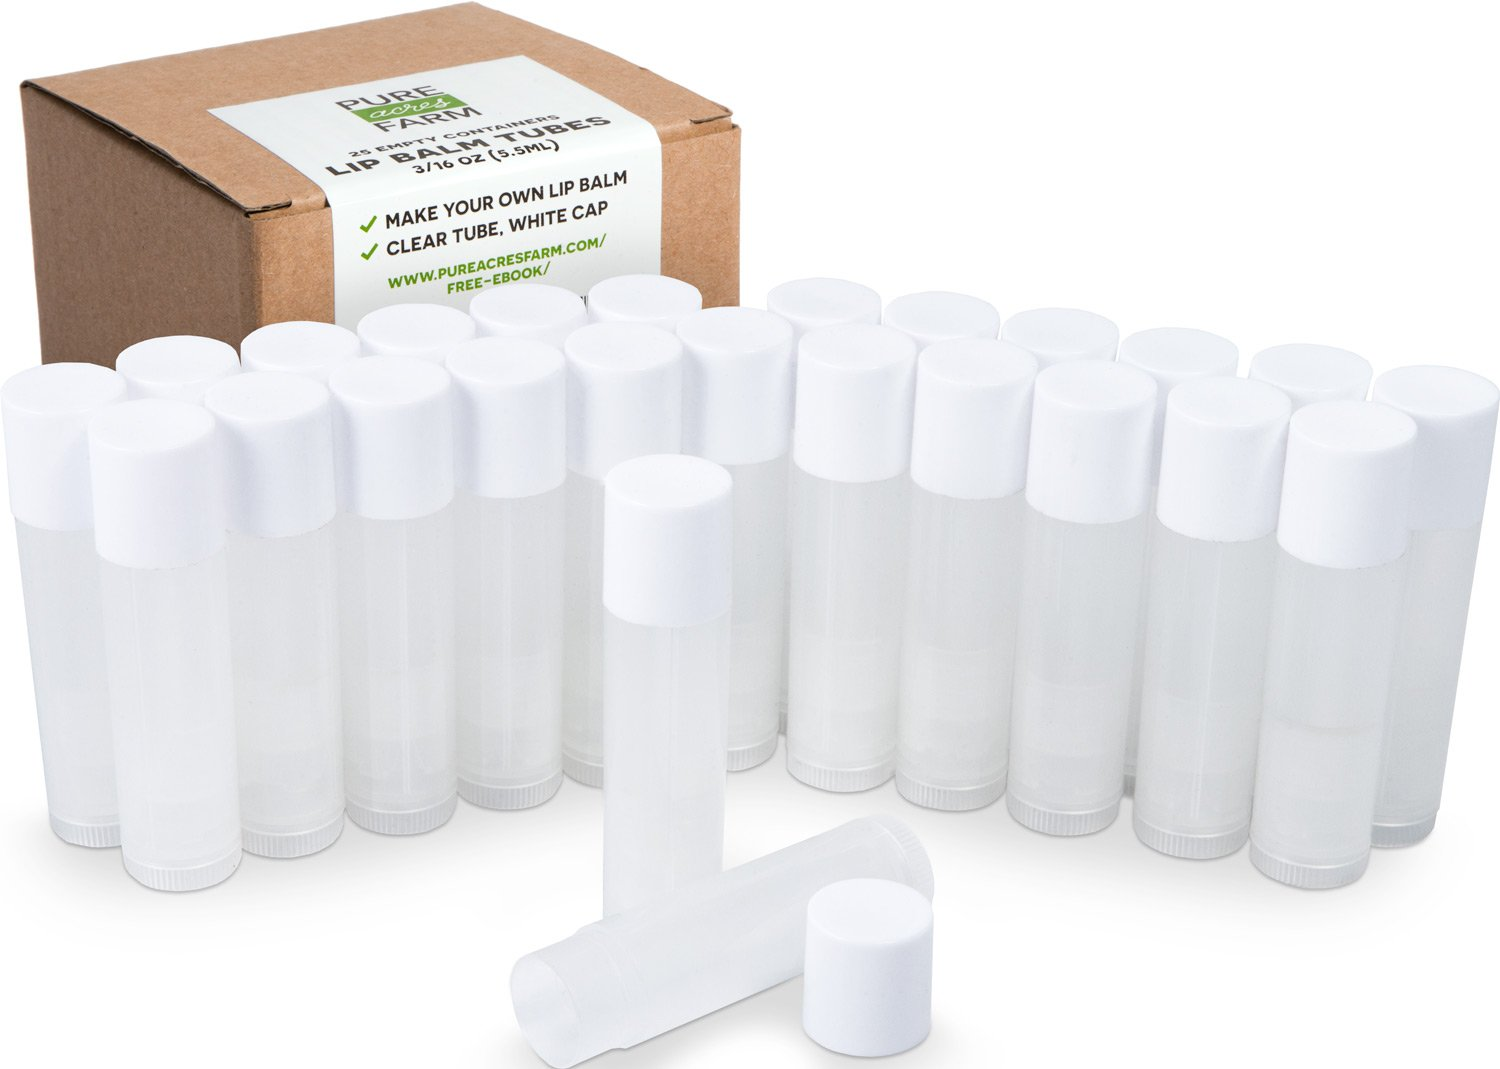 25 Lip Balm Containers - Empty Tubes - Make Your Own Lip Balm - 3/16 Oz (5.5ml) - Color: Natural Clear (Translucent) Greenvida Lip-Balm-Containers-Tubes